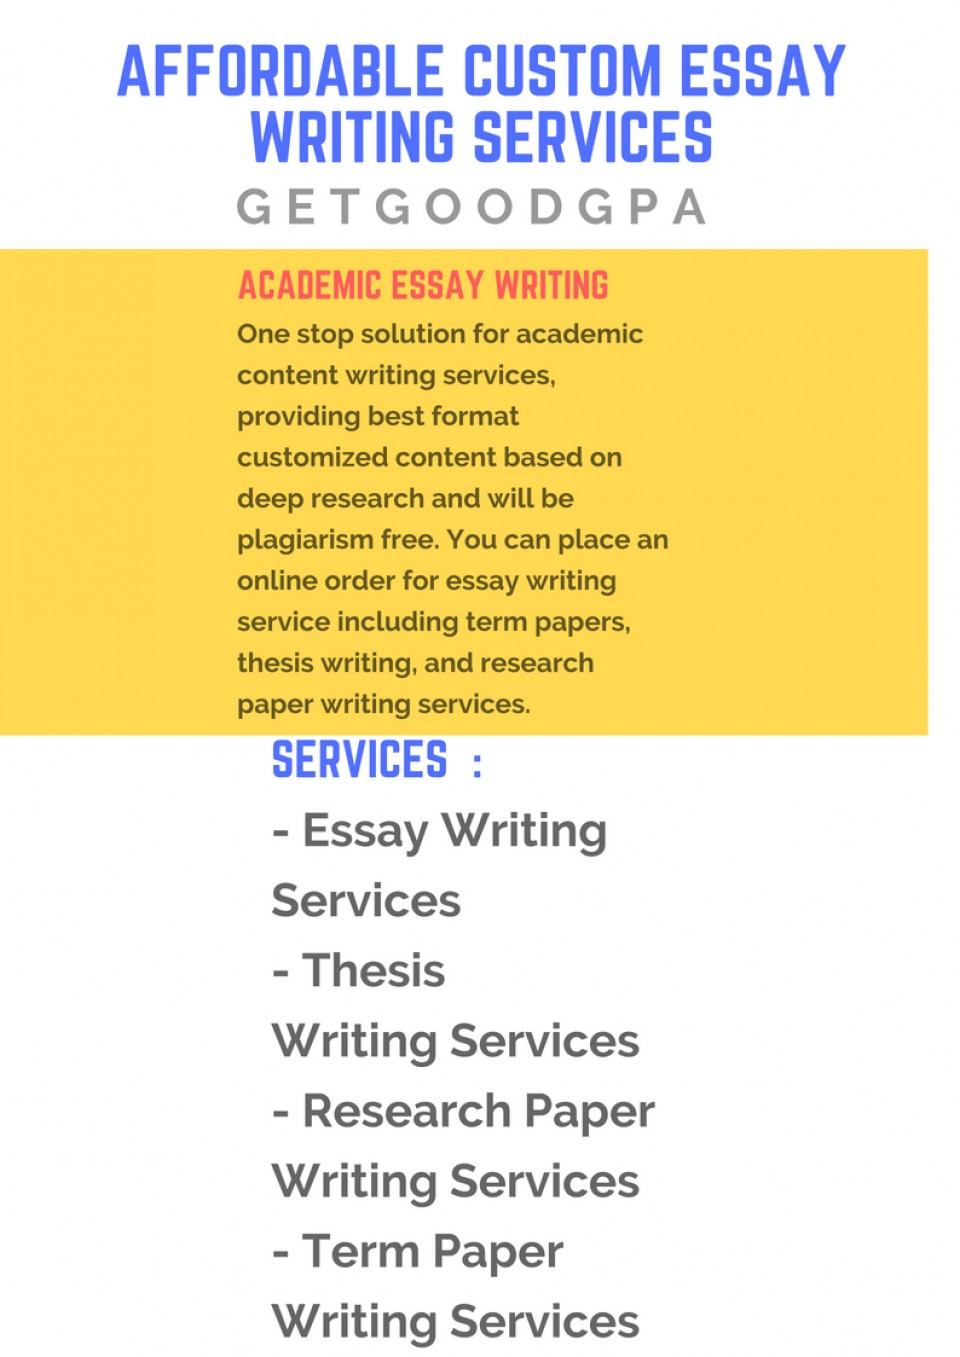 002 Research Paper Writing Services Archaicawful In Delhi Service Reviews 960